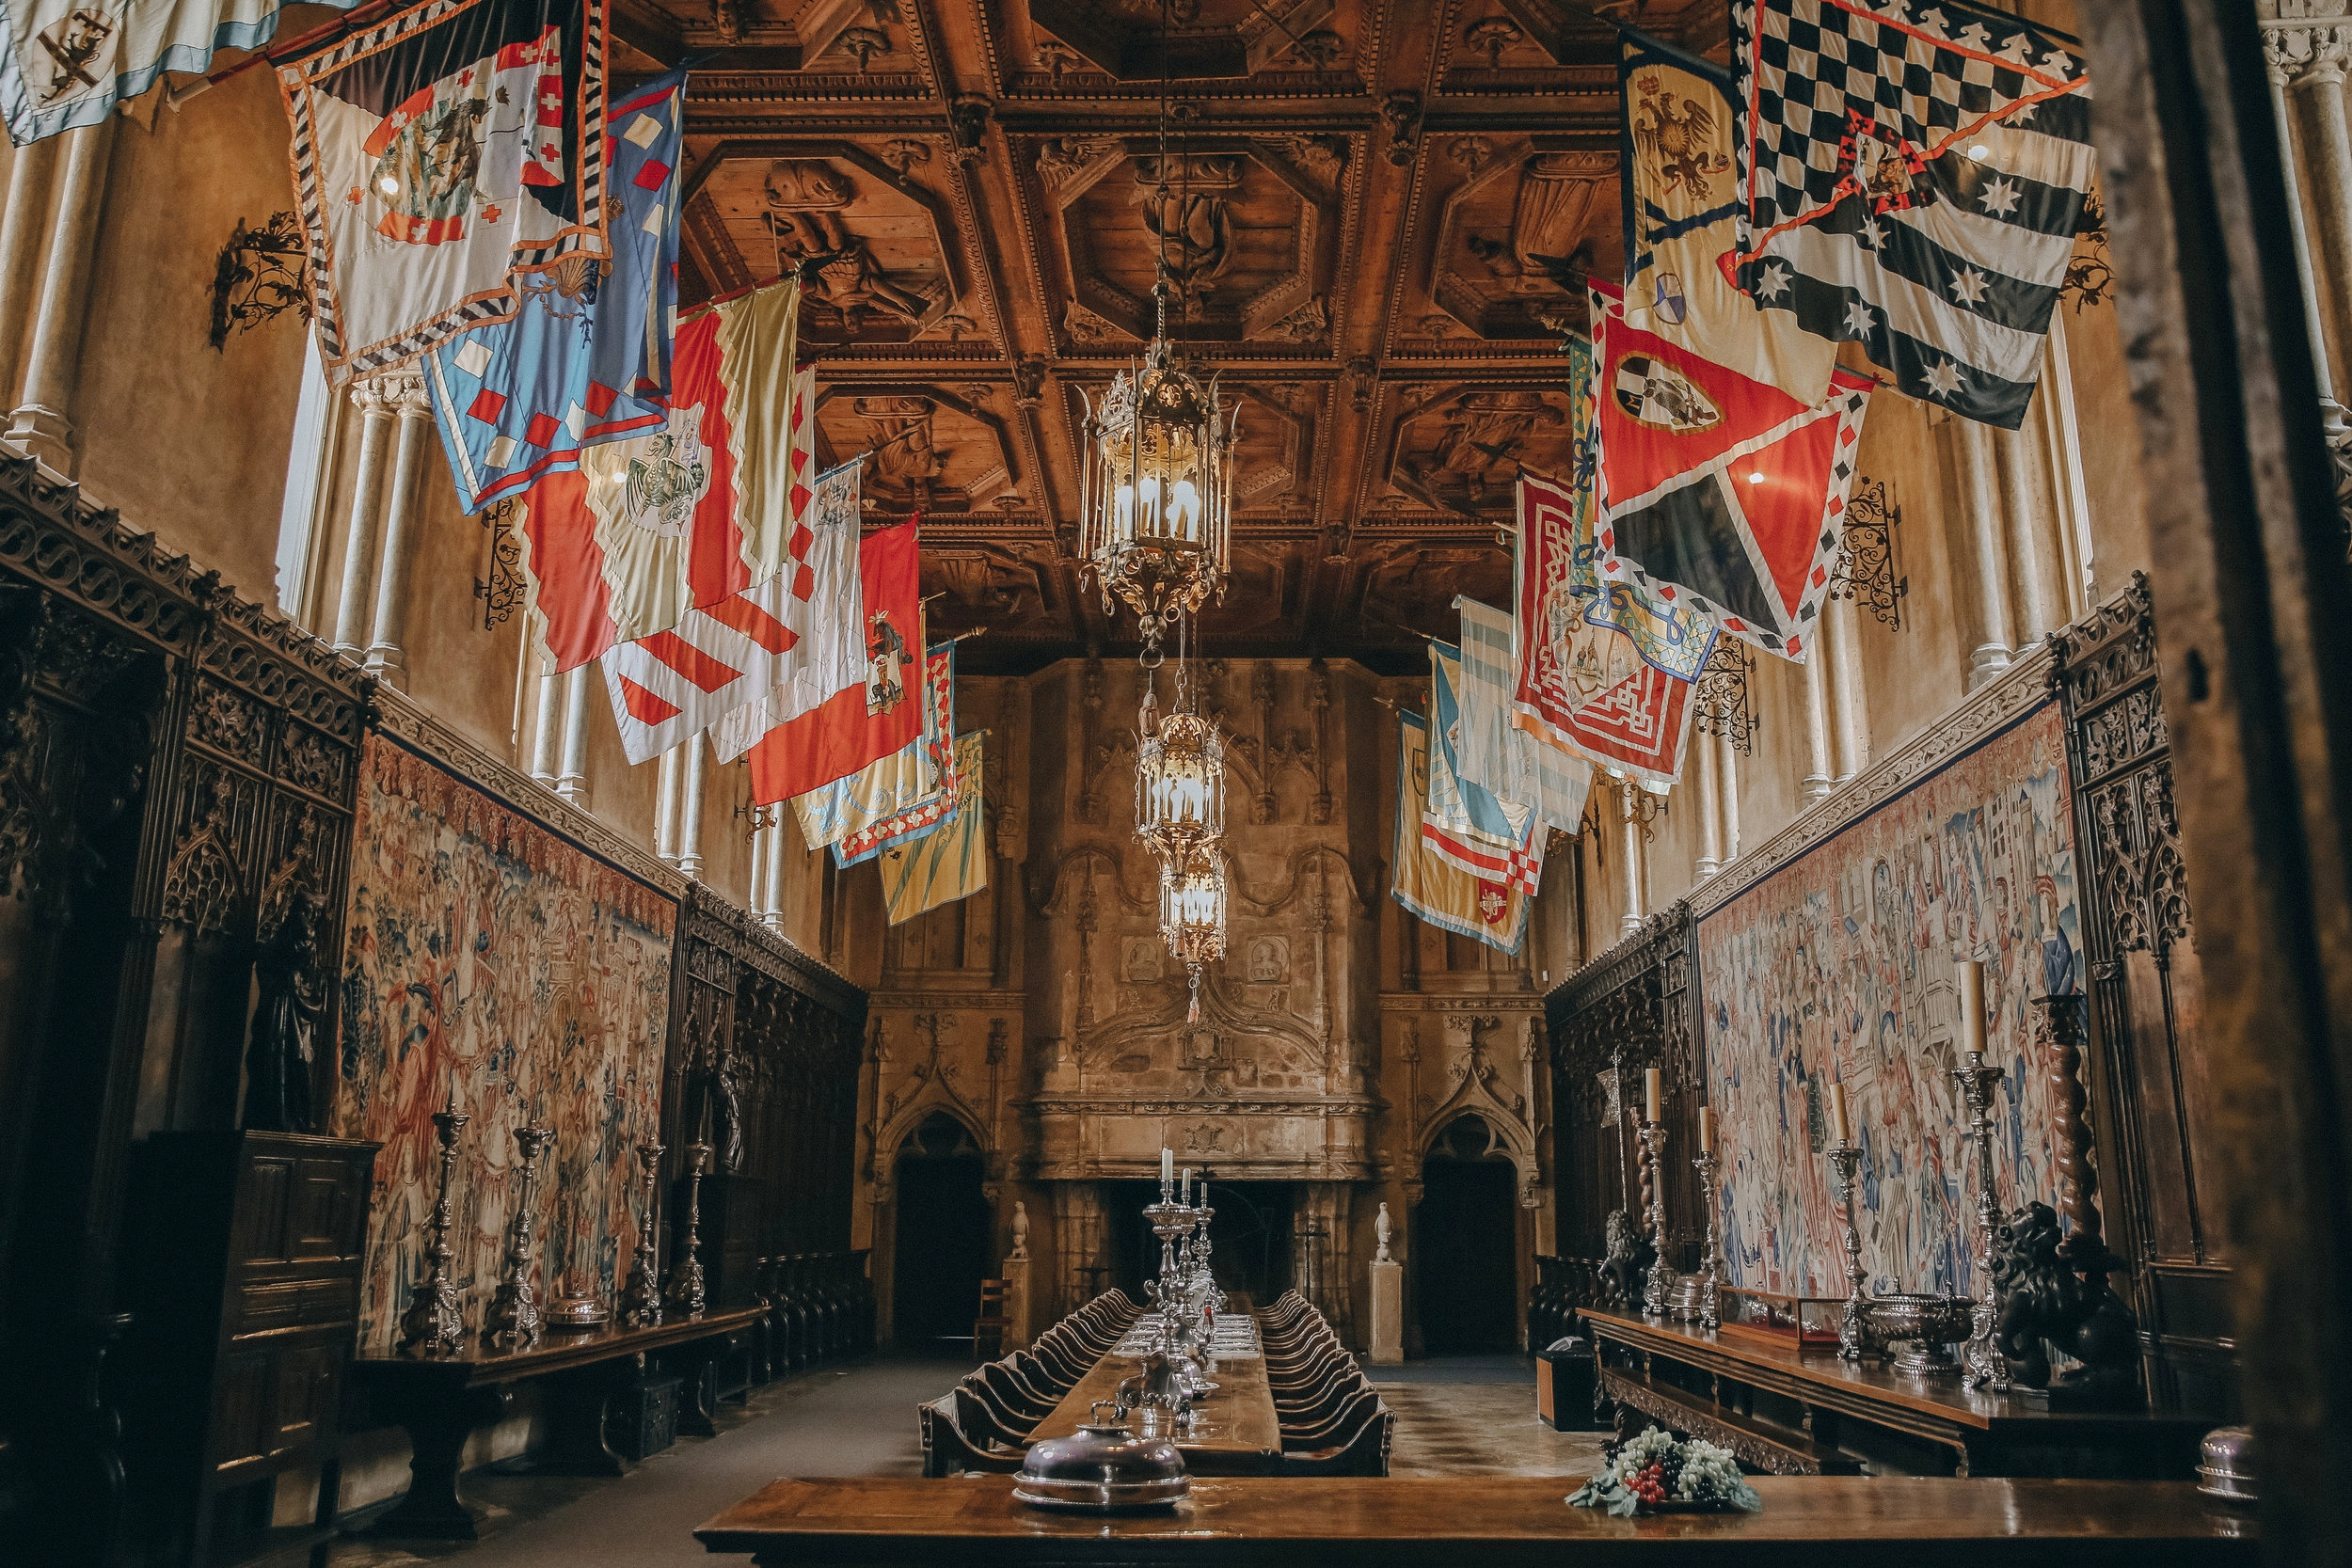 The grand dining room at Hearst Castle